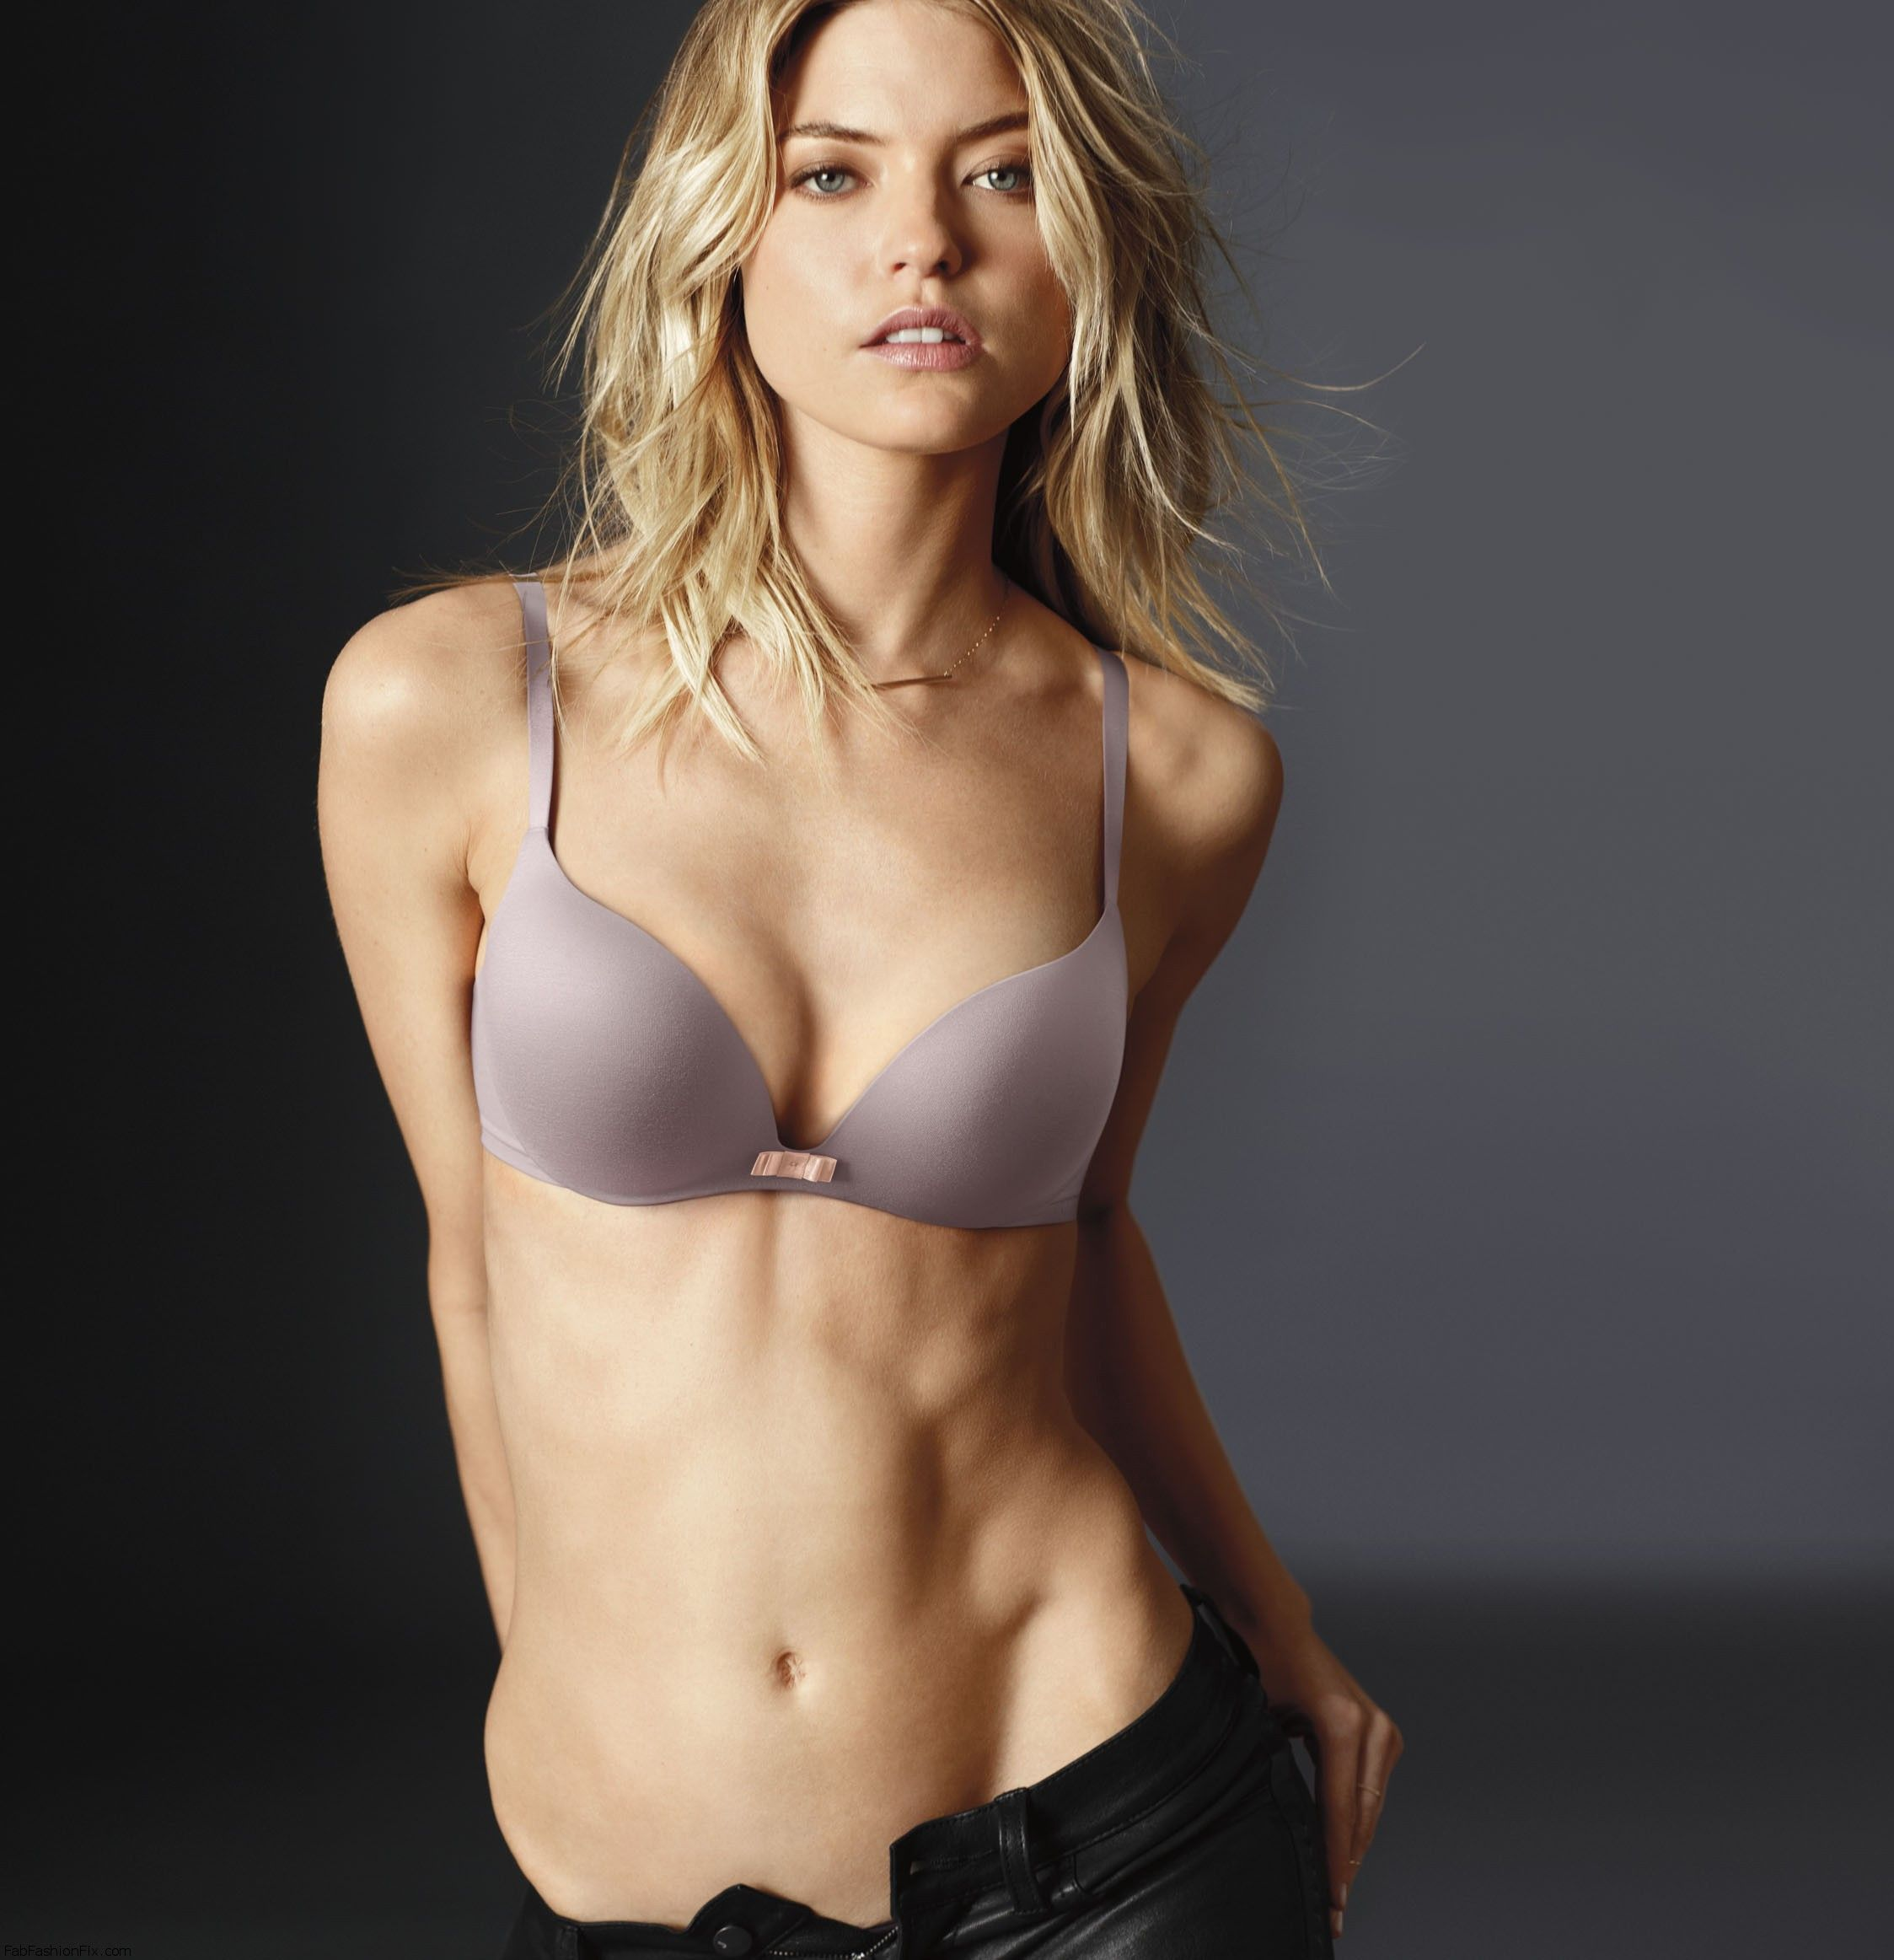 a0df6fdef7 Martha Hunt for Victoria s Secret lingerie (August 2014) - Fab ...